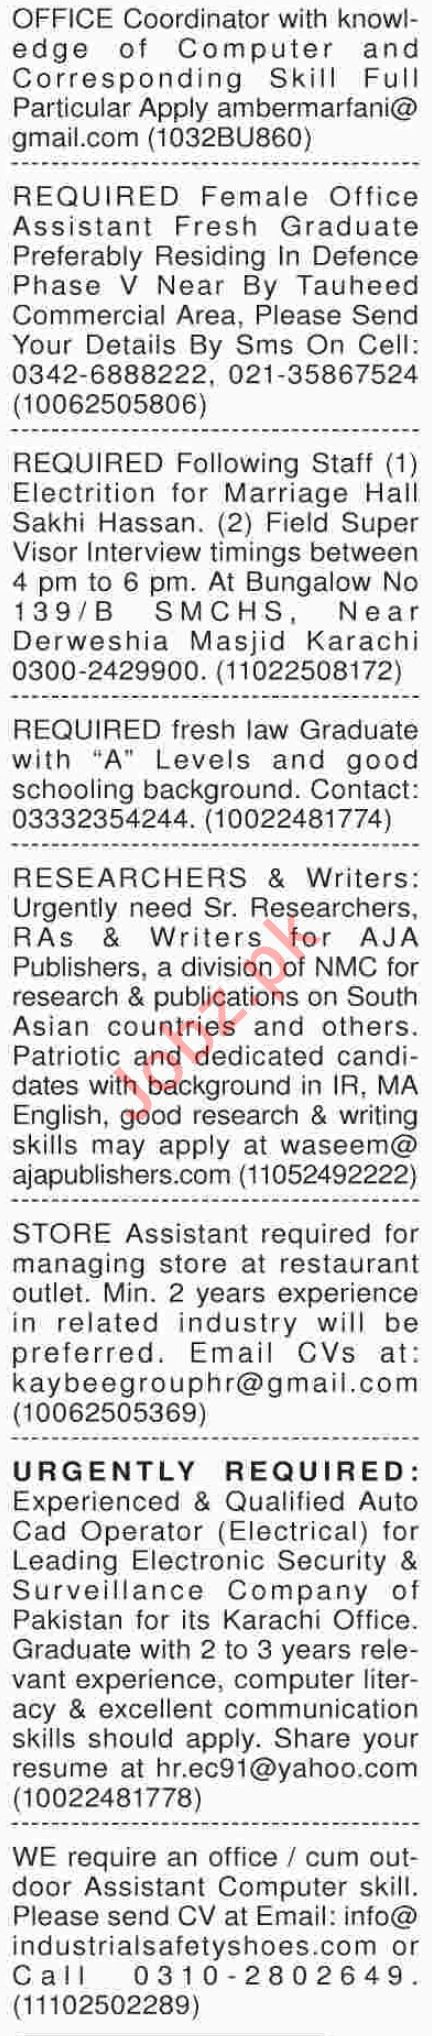 Dawn Sunday Management Classified Jobs 21/10/2018